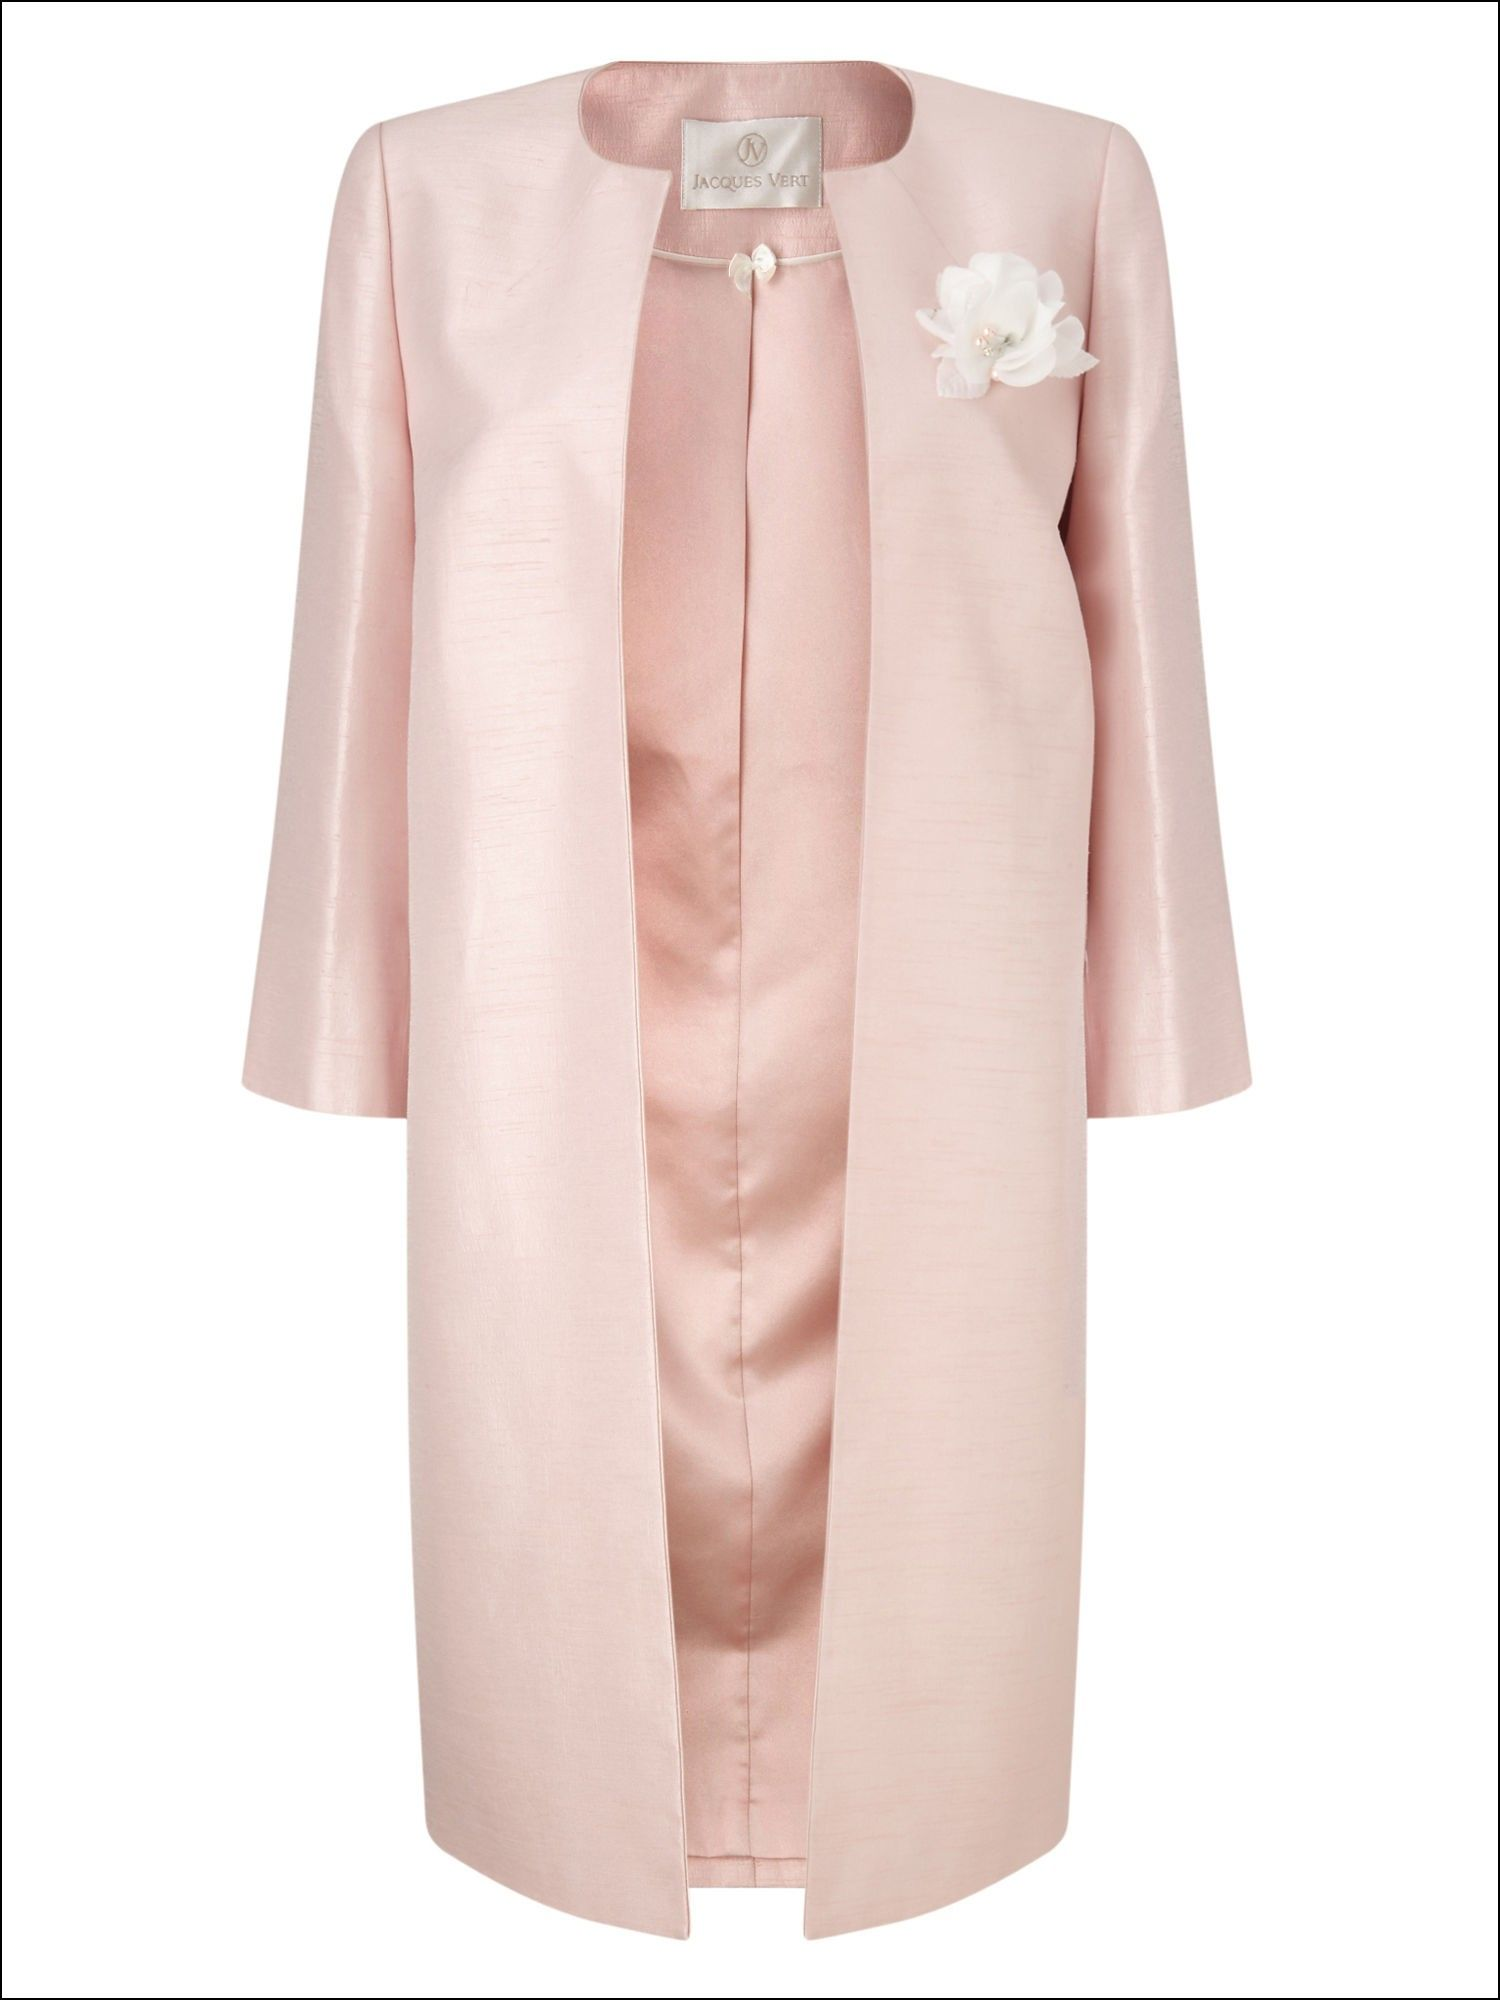 Matching Dress And Jacket For Wedding